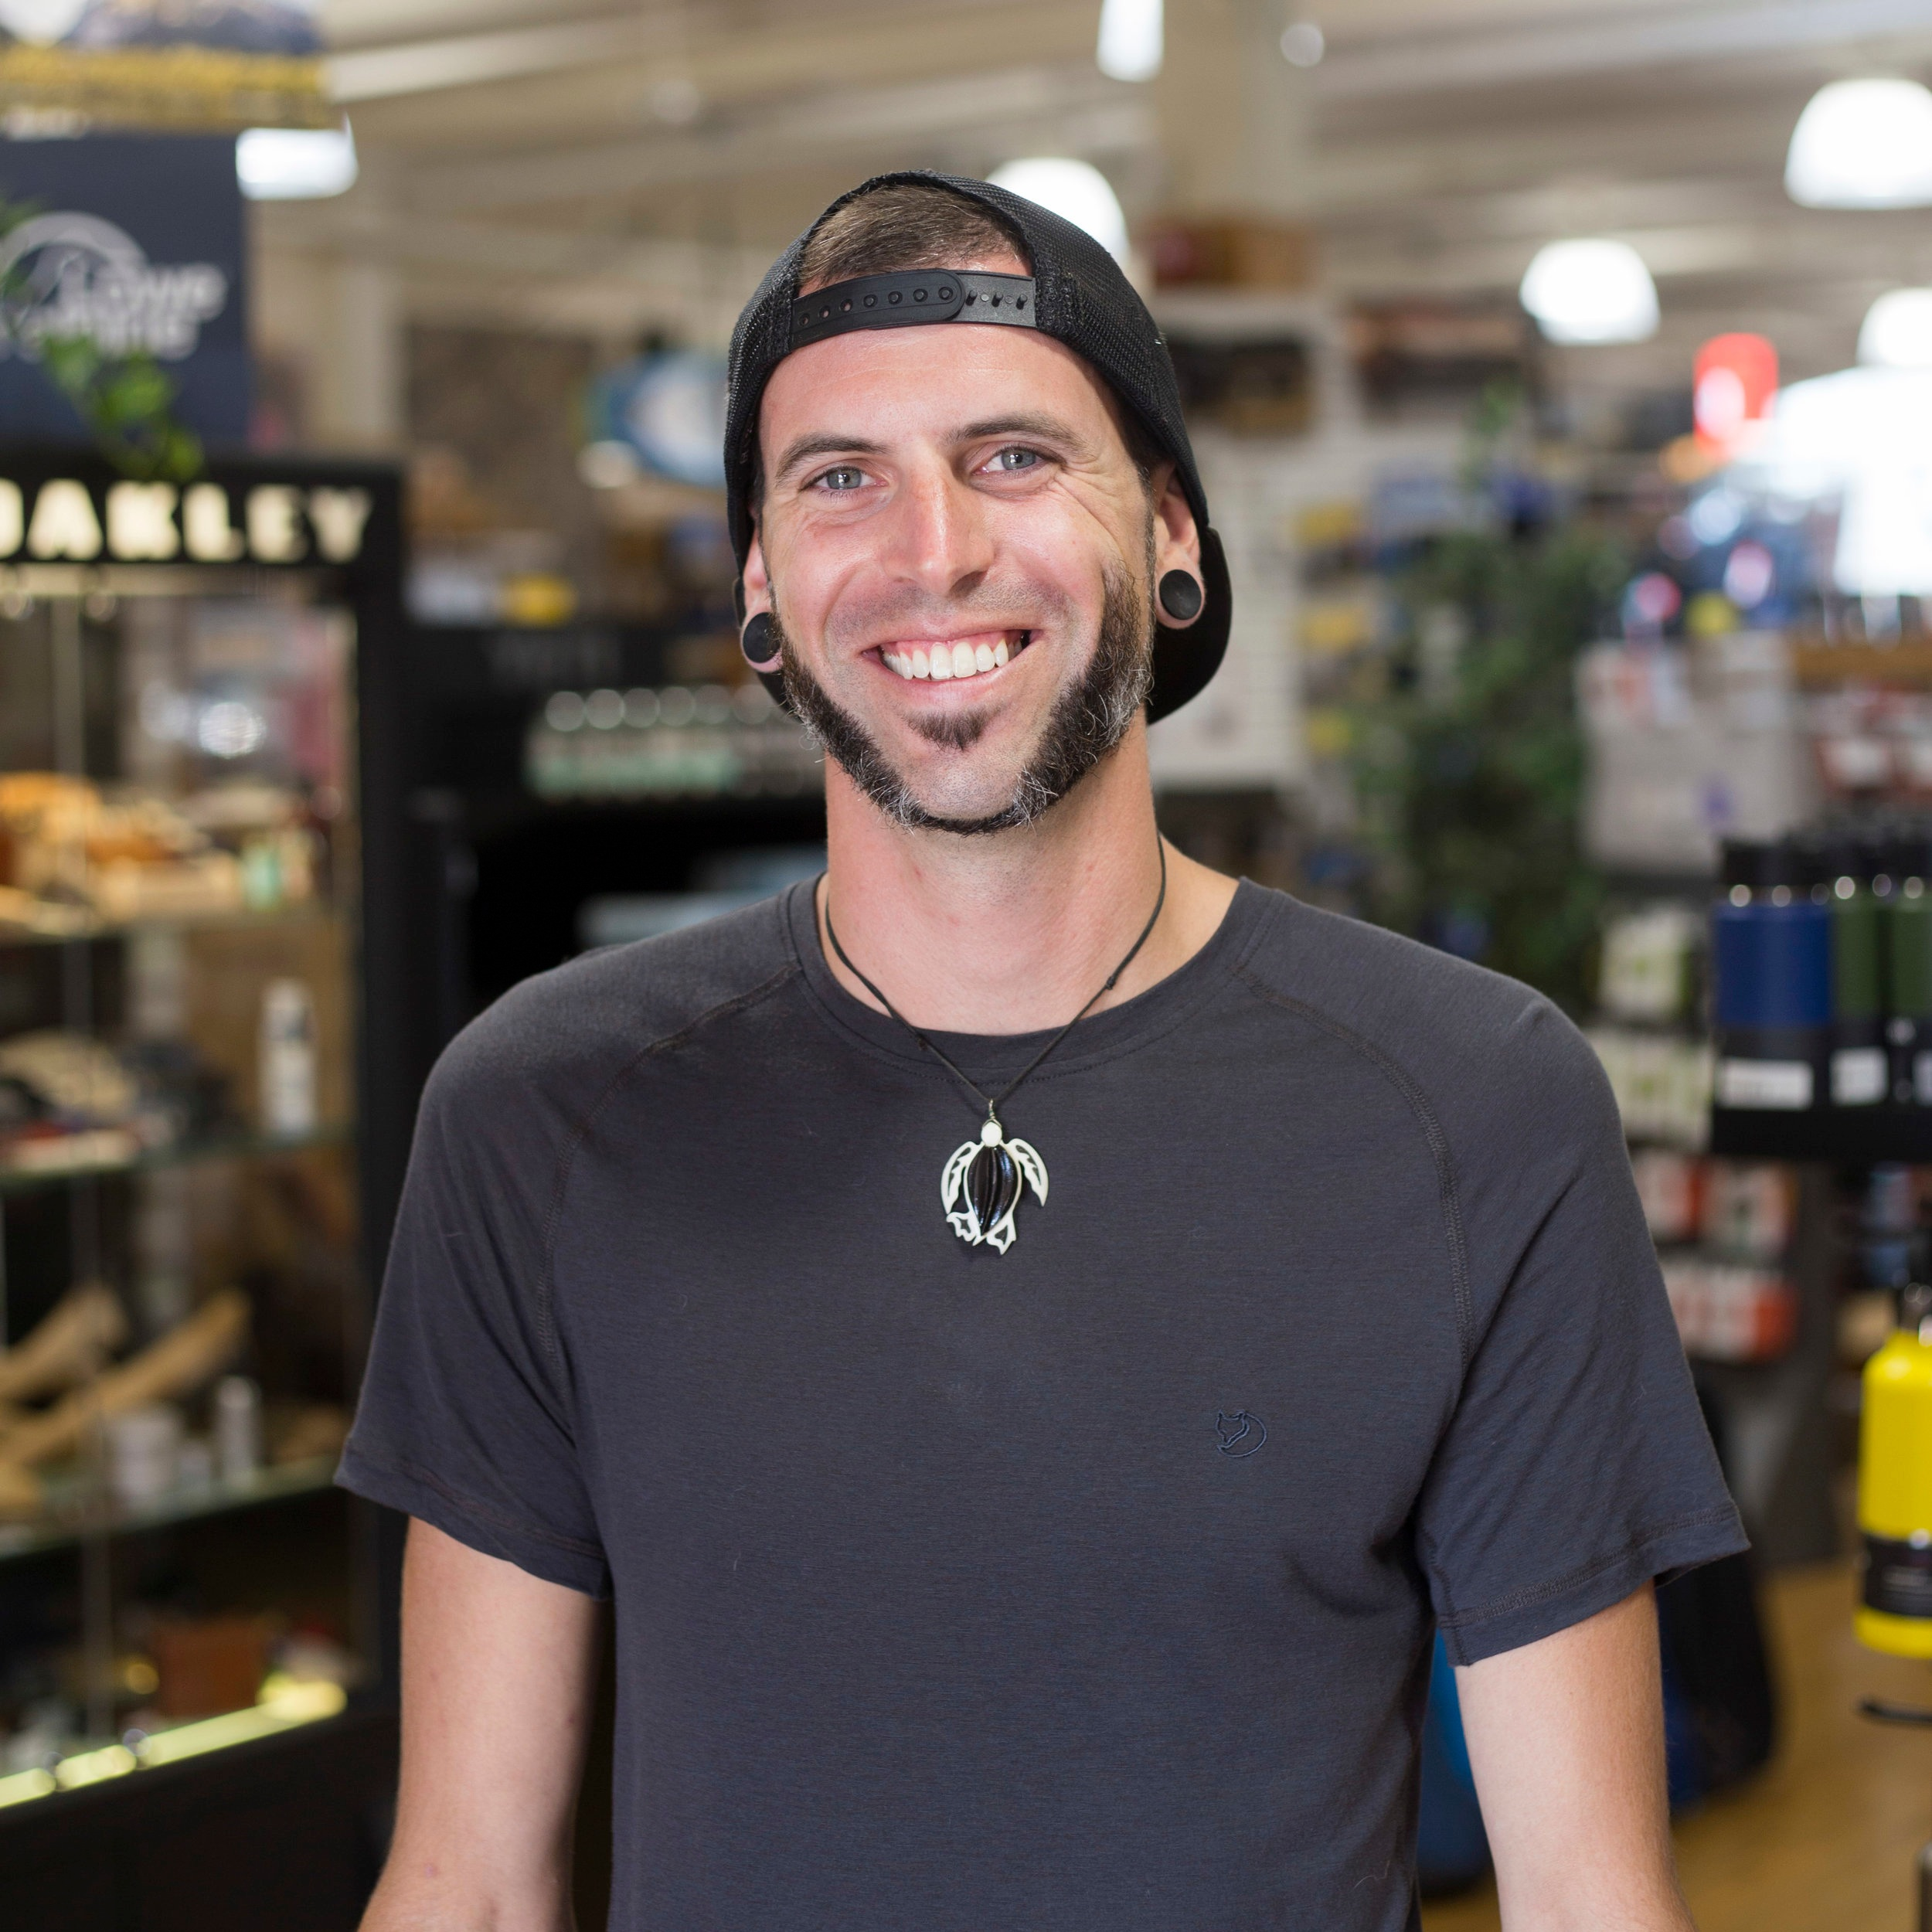 Ryan Sutherland   Ryan runs our  camping  and  paddling  department. He's the guy you'll want to talk to next time you're planning an epic back country trip - his knowledge of everything from hiking packs to water filtration will ensure you're well prepared.